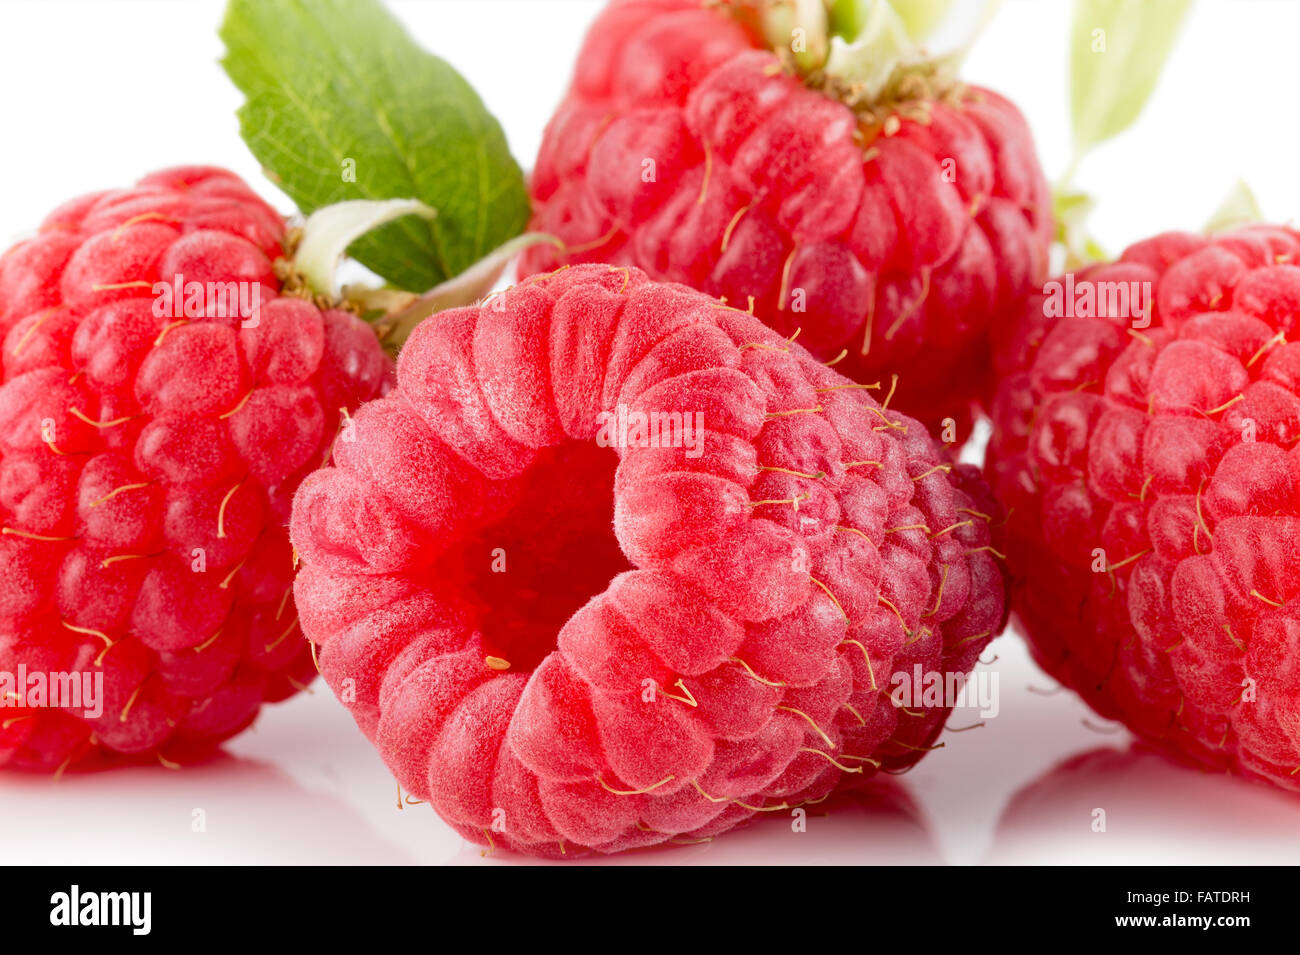 raspberries isolated on the white background. - Stock Image